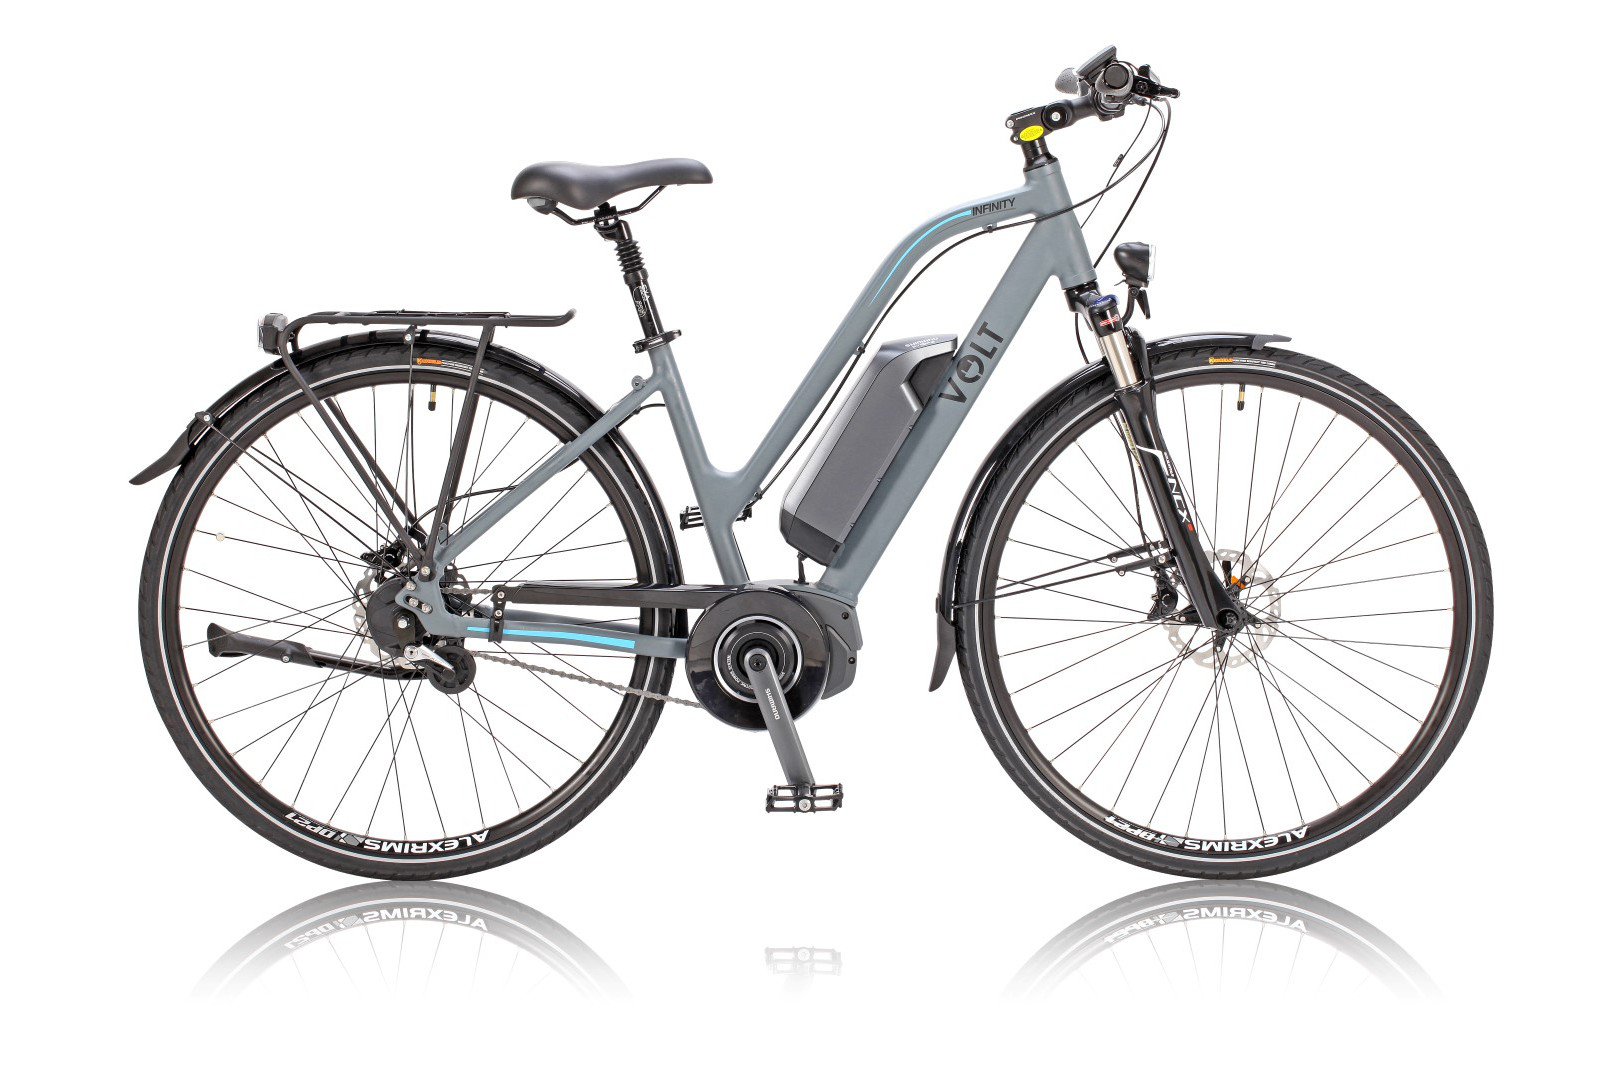 Infinity II Shimano STEPS e-bike from Volt